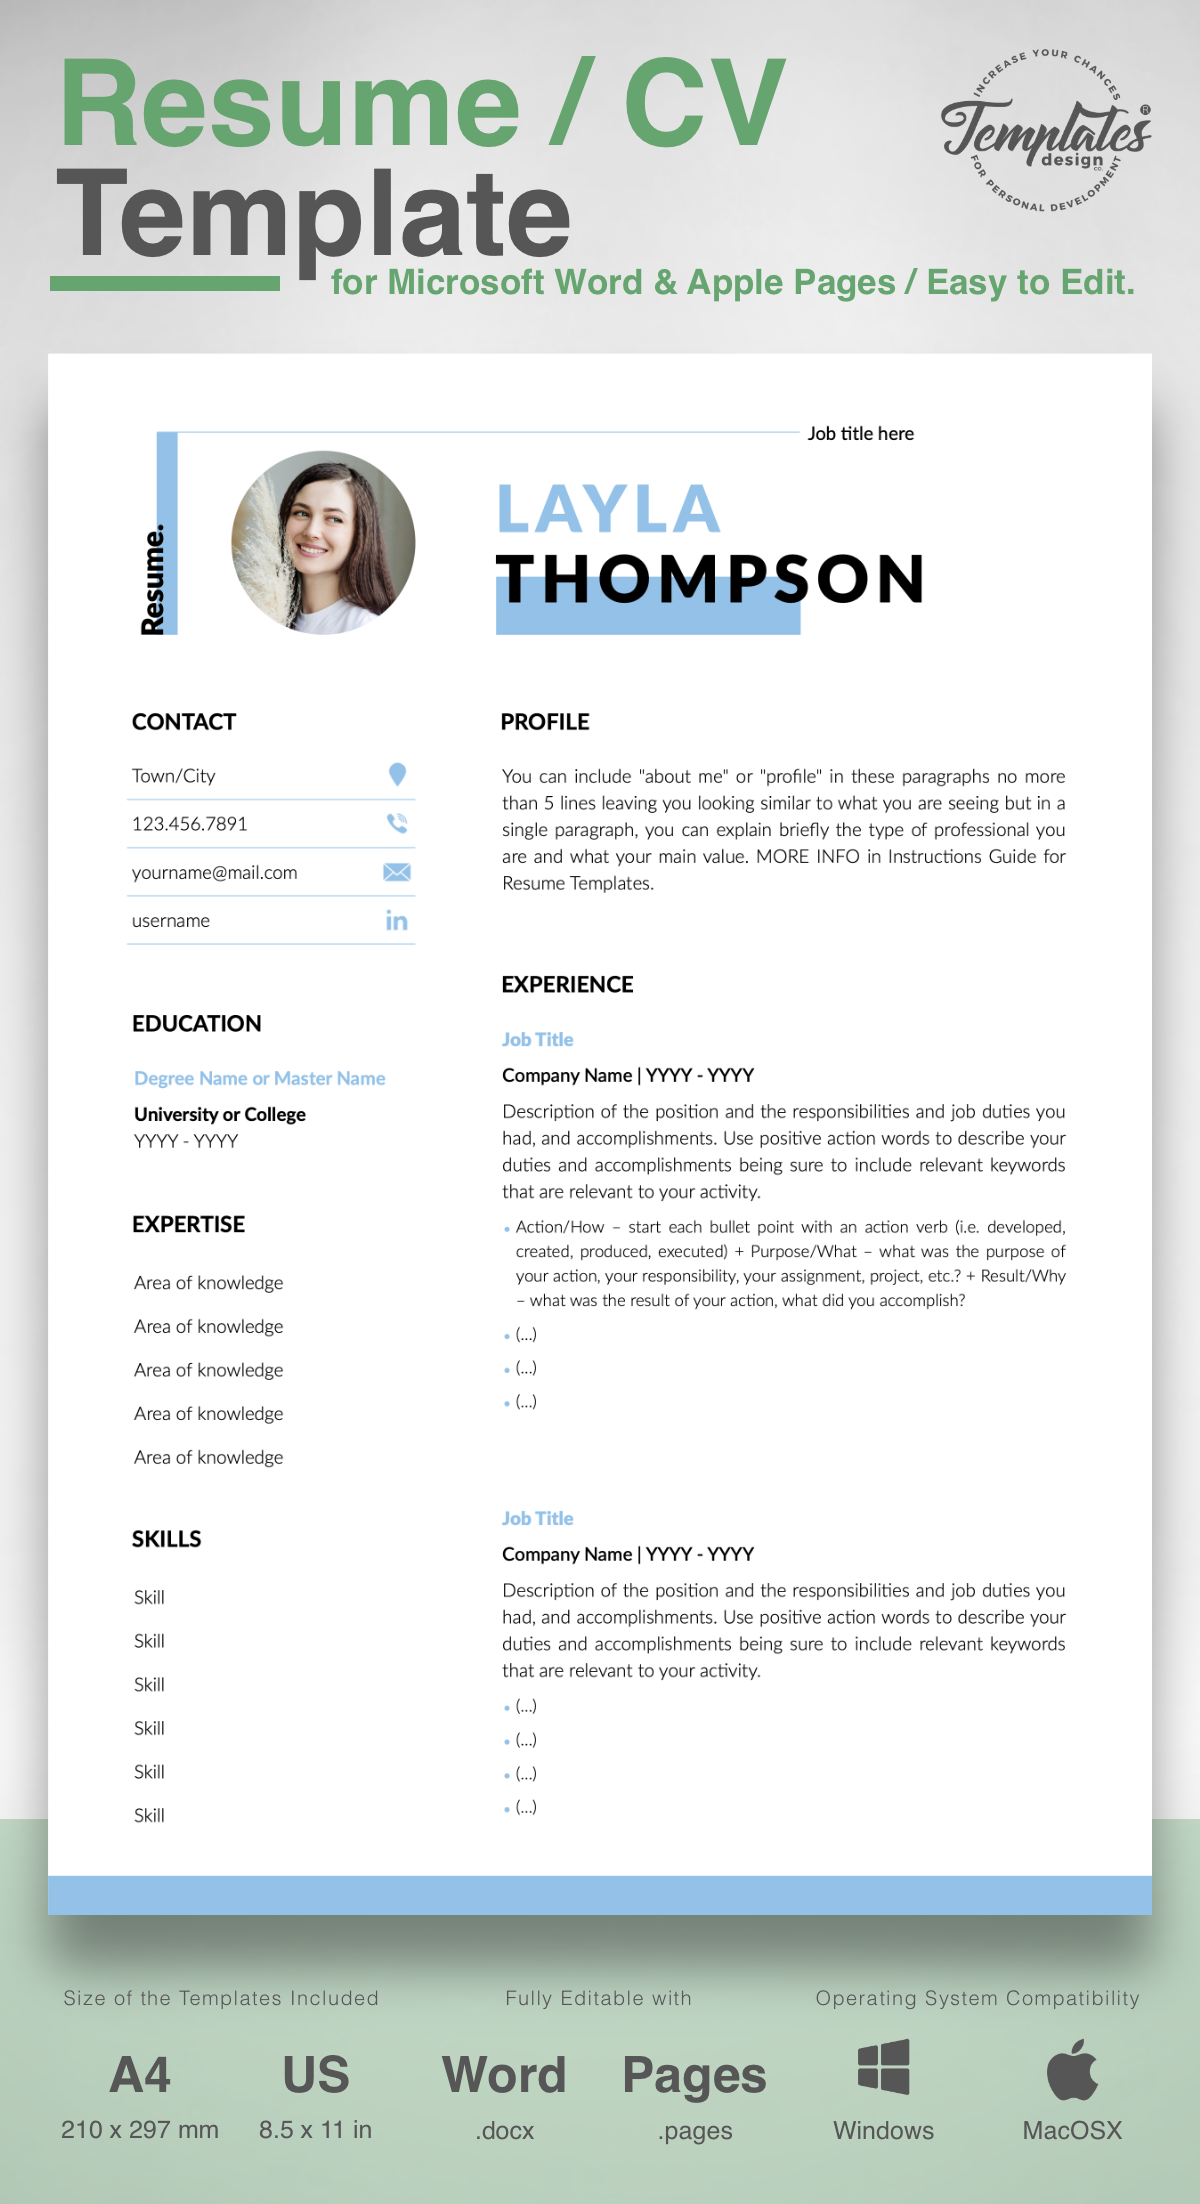 Layla Thompson Simple Resume Cv Template For Word Pages Us Letter A4 Files 1 2 3 Page Resume Version Cover Letter References Cover Letter